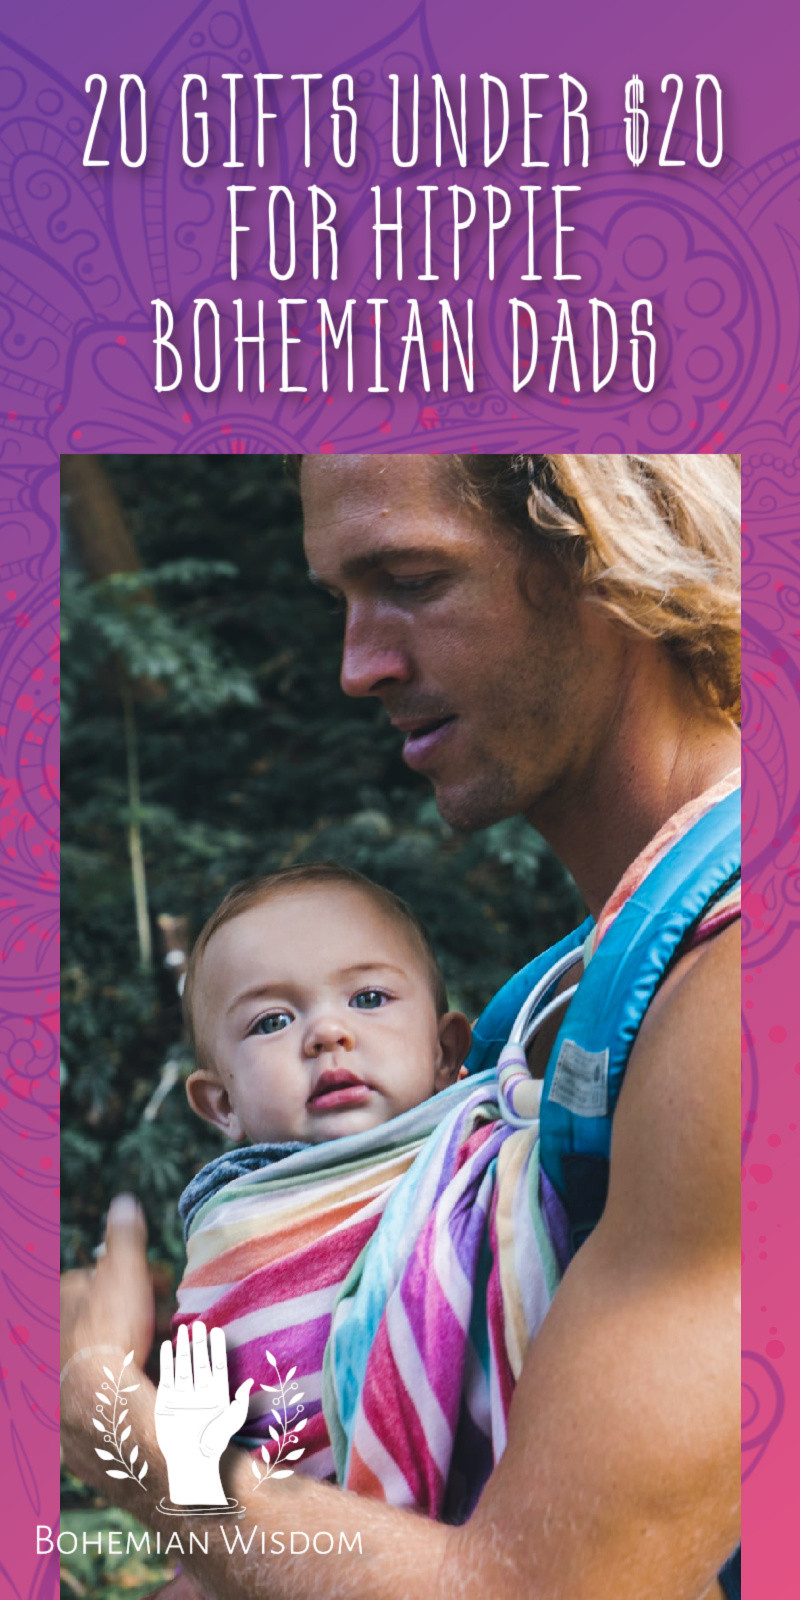 20 Gifts Under $20 for Hippie Bohemian Dads {Cool Father's Day Gift Guide 2021}. Gifts for bohemians| Gifts for hippies. Gifts for hippie men. Gifts for hippie dad. Hippie father's day. Boho hippie gifts. Gifts for hippie parents. Gifts for hippie dad. Boho daddy.